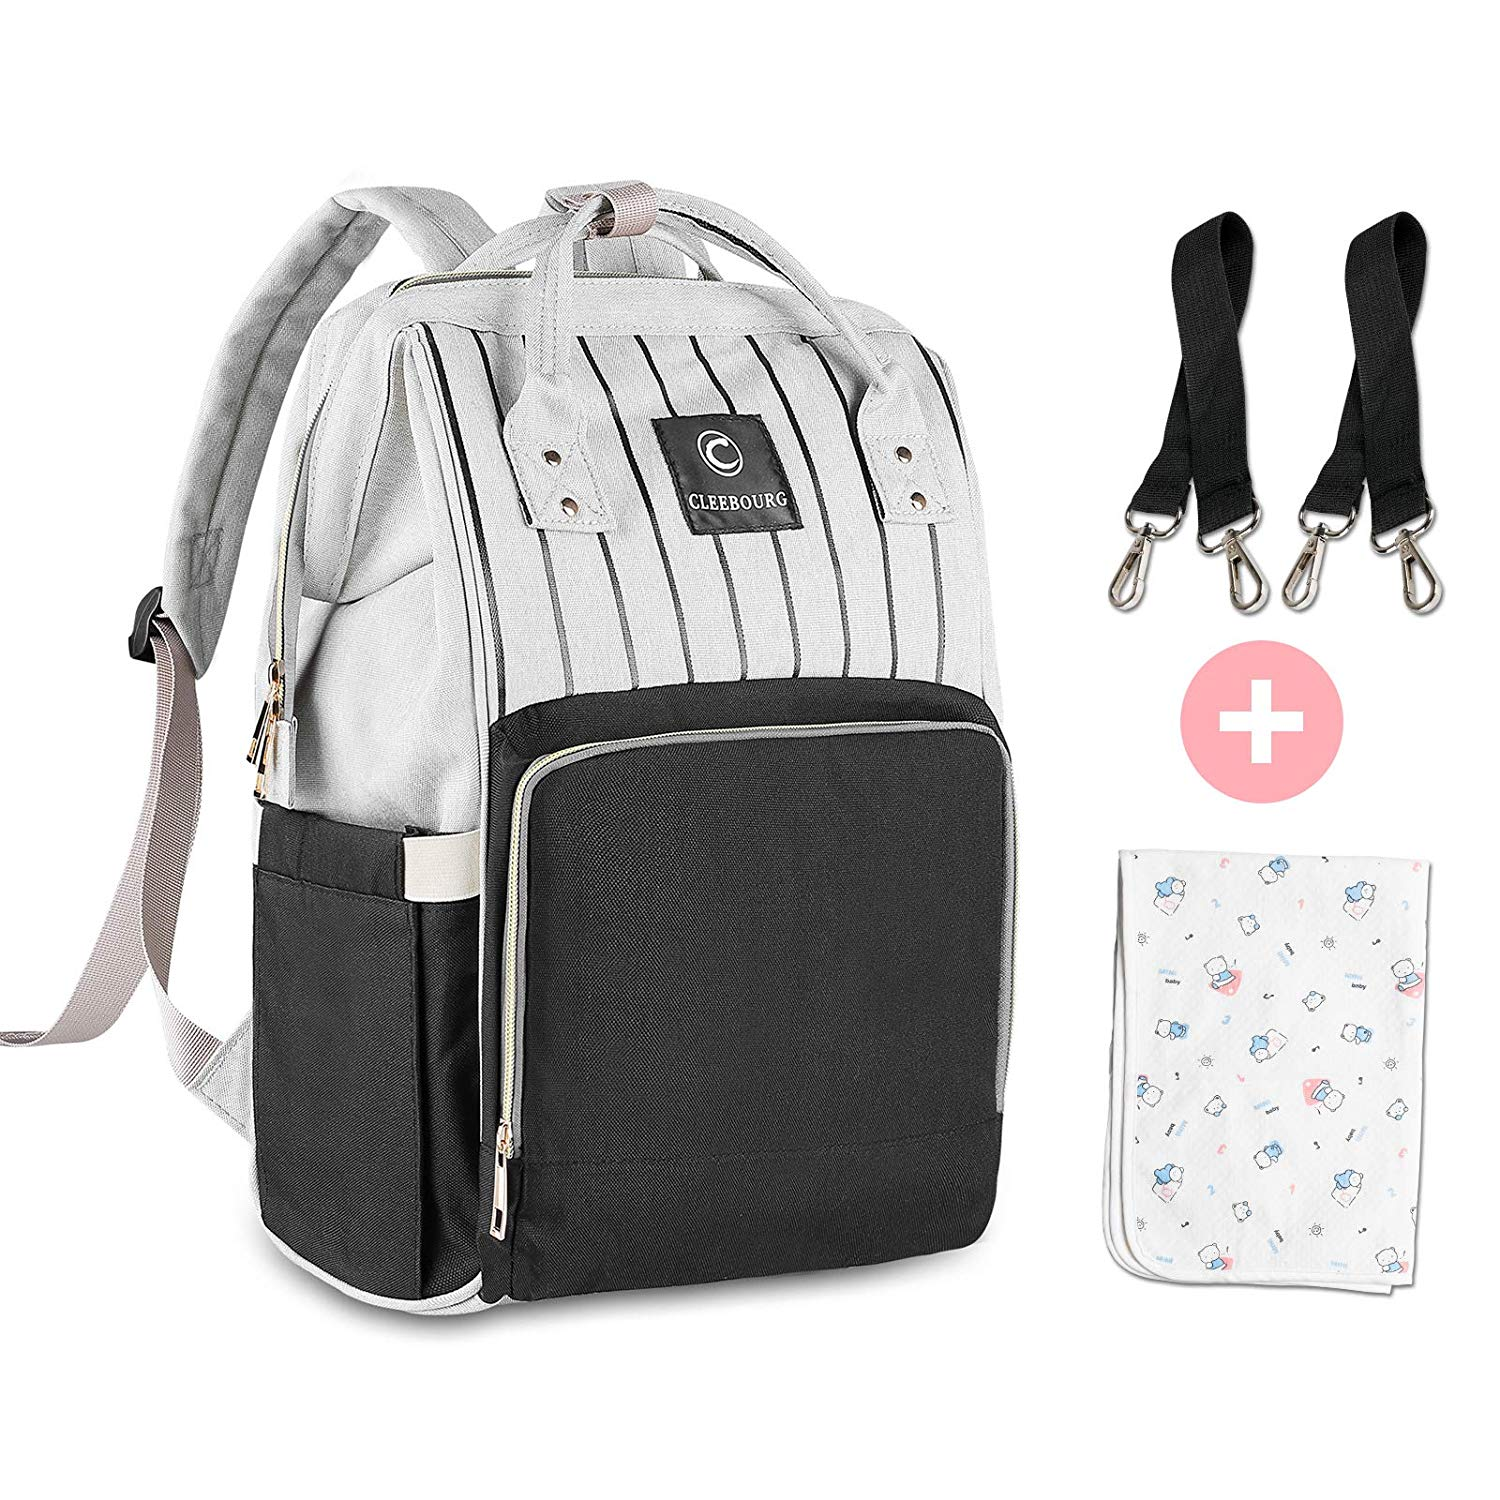 CLEEBOURG Nappy Bag Backpack